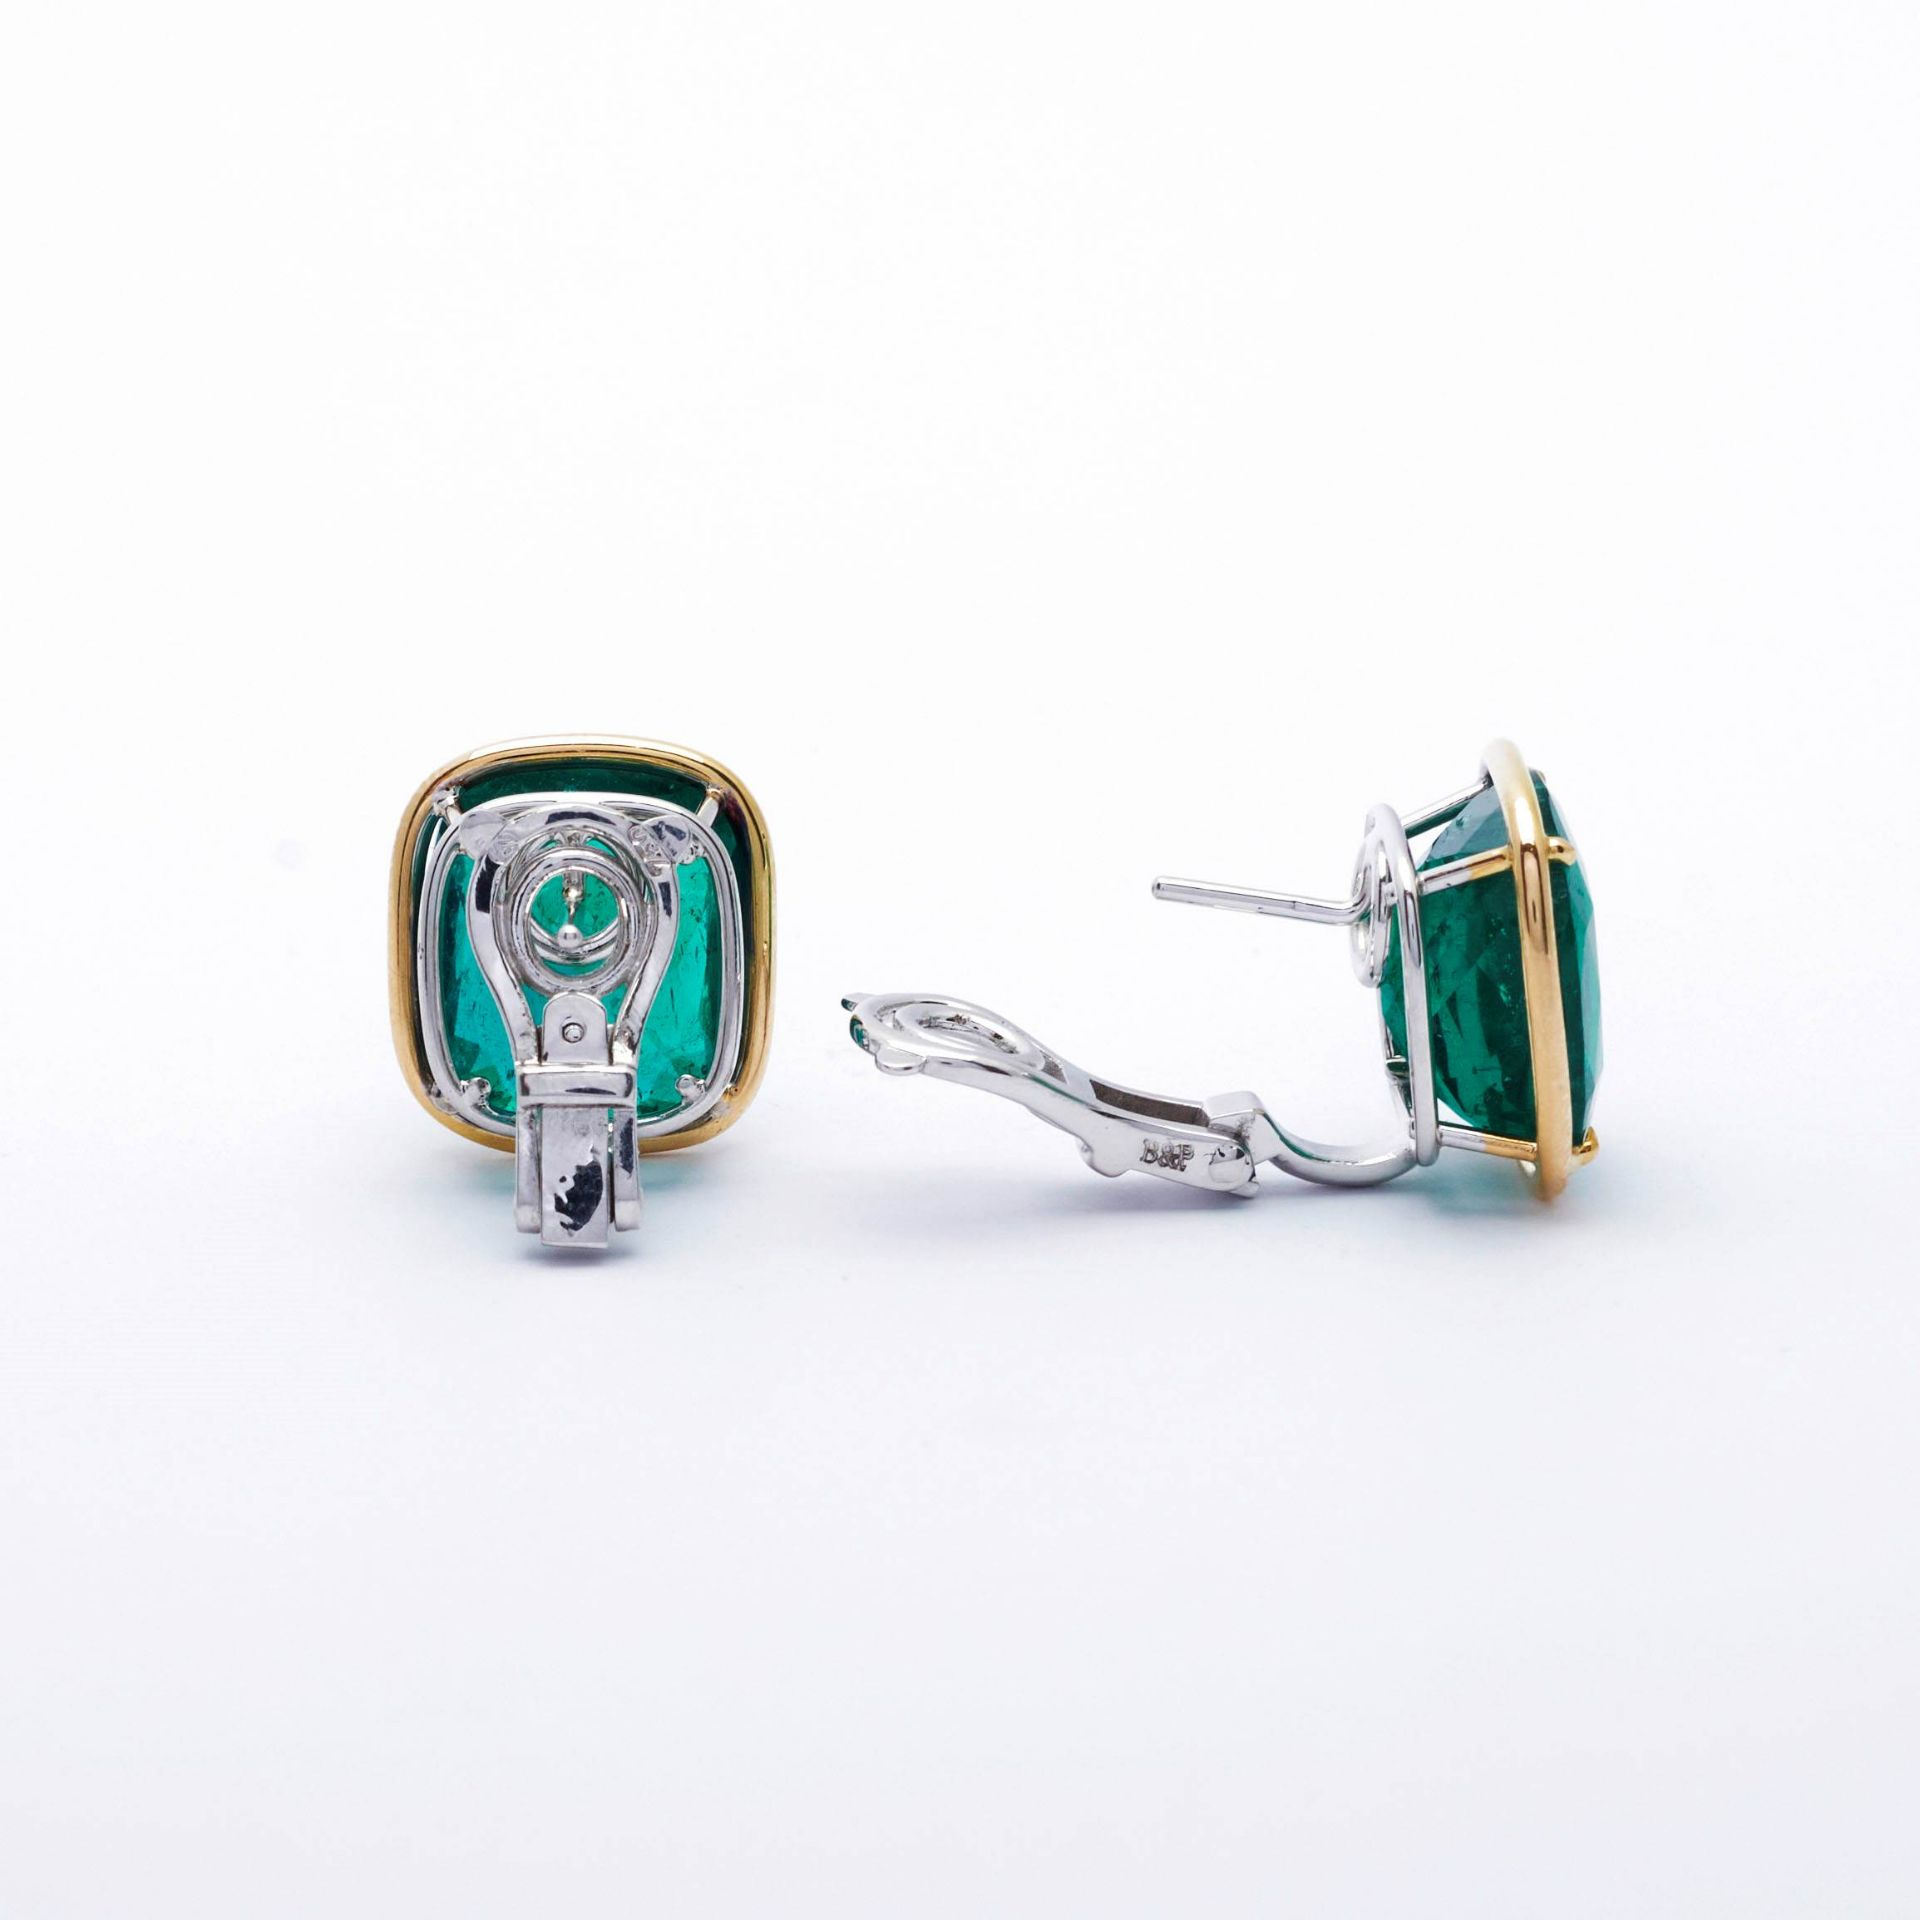 EMERALD AND GOLD EARCLIPS. - Image 6 of 7